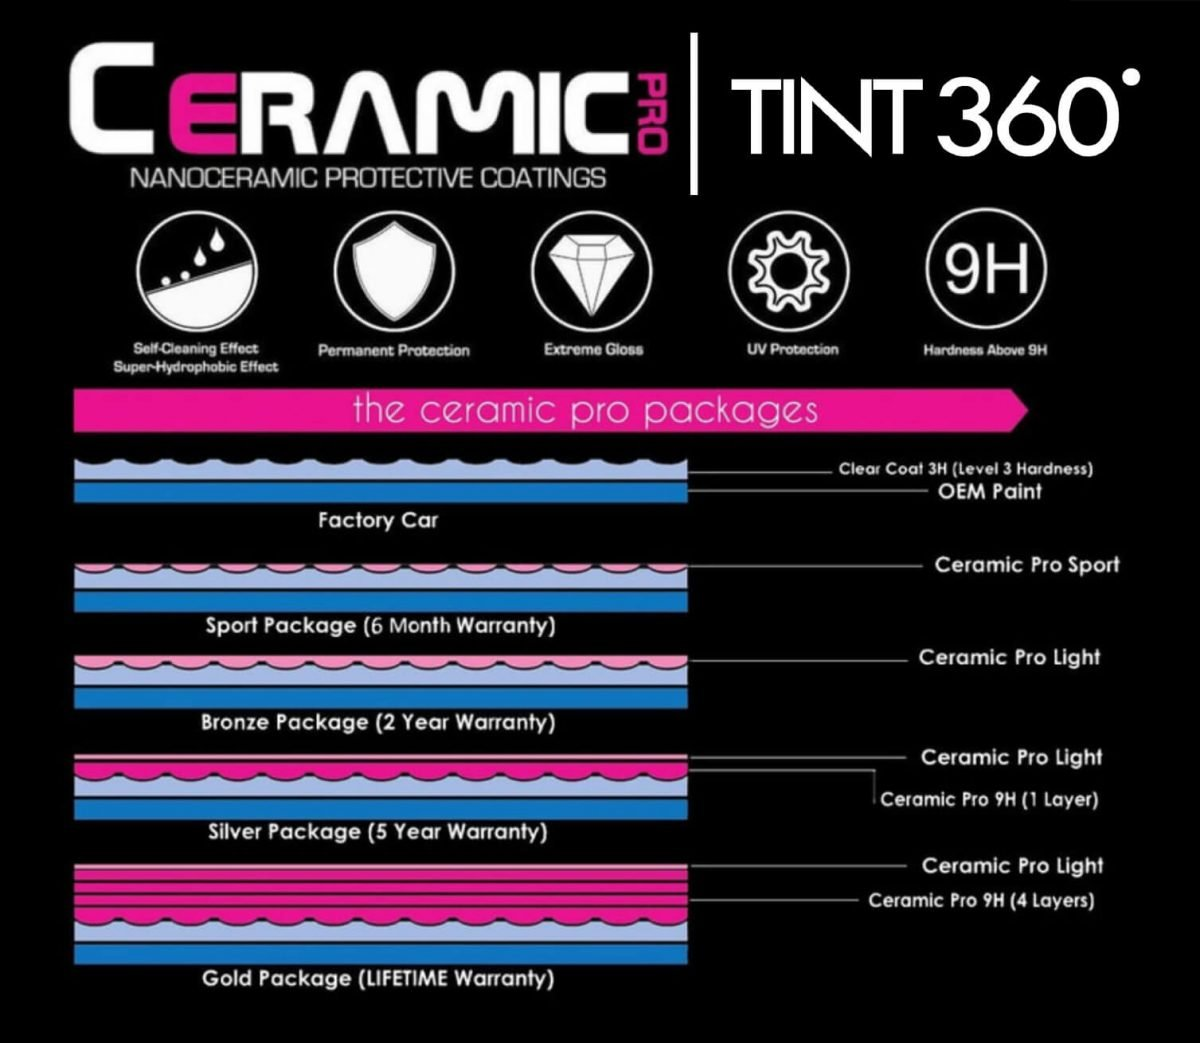 Ceramic Coating Benefits and Packages